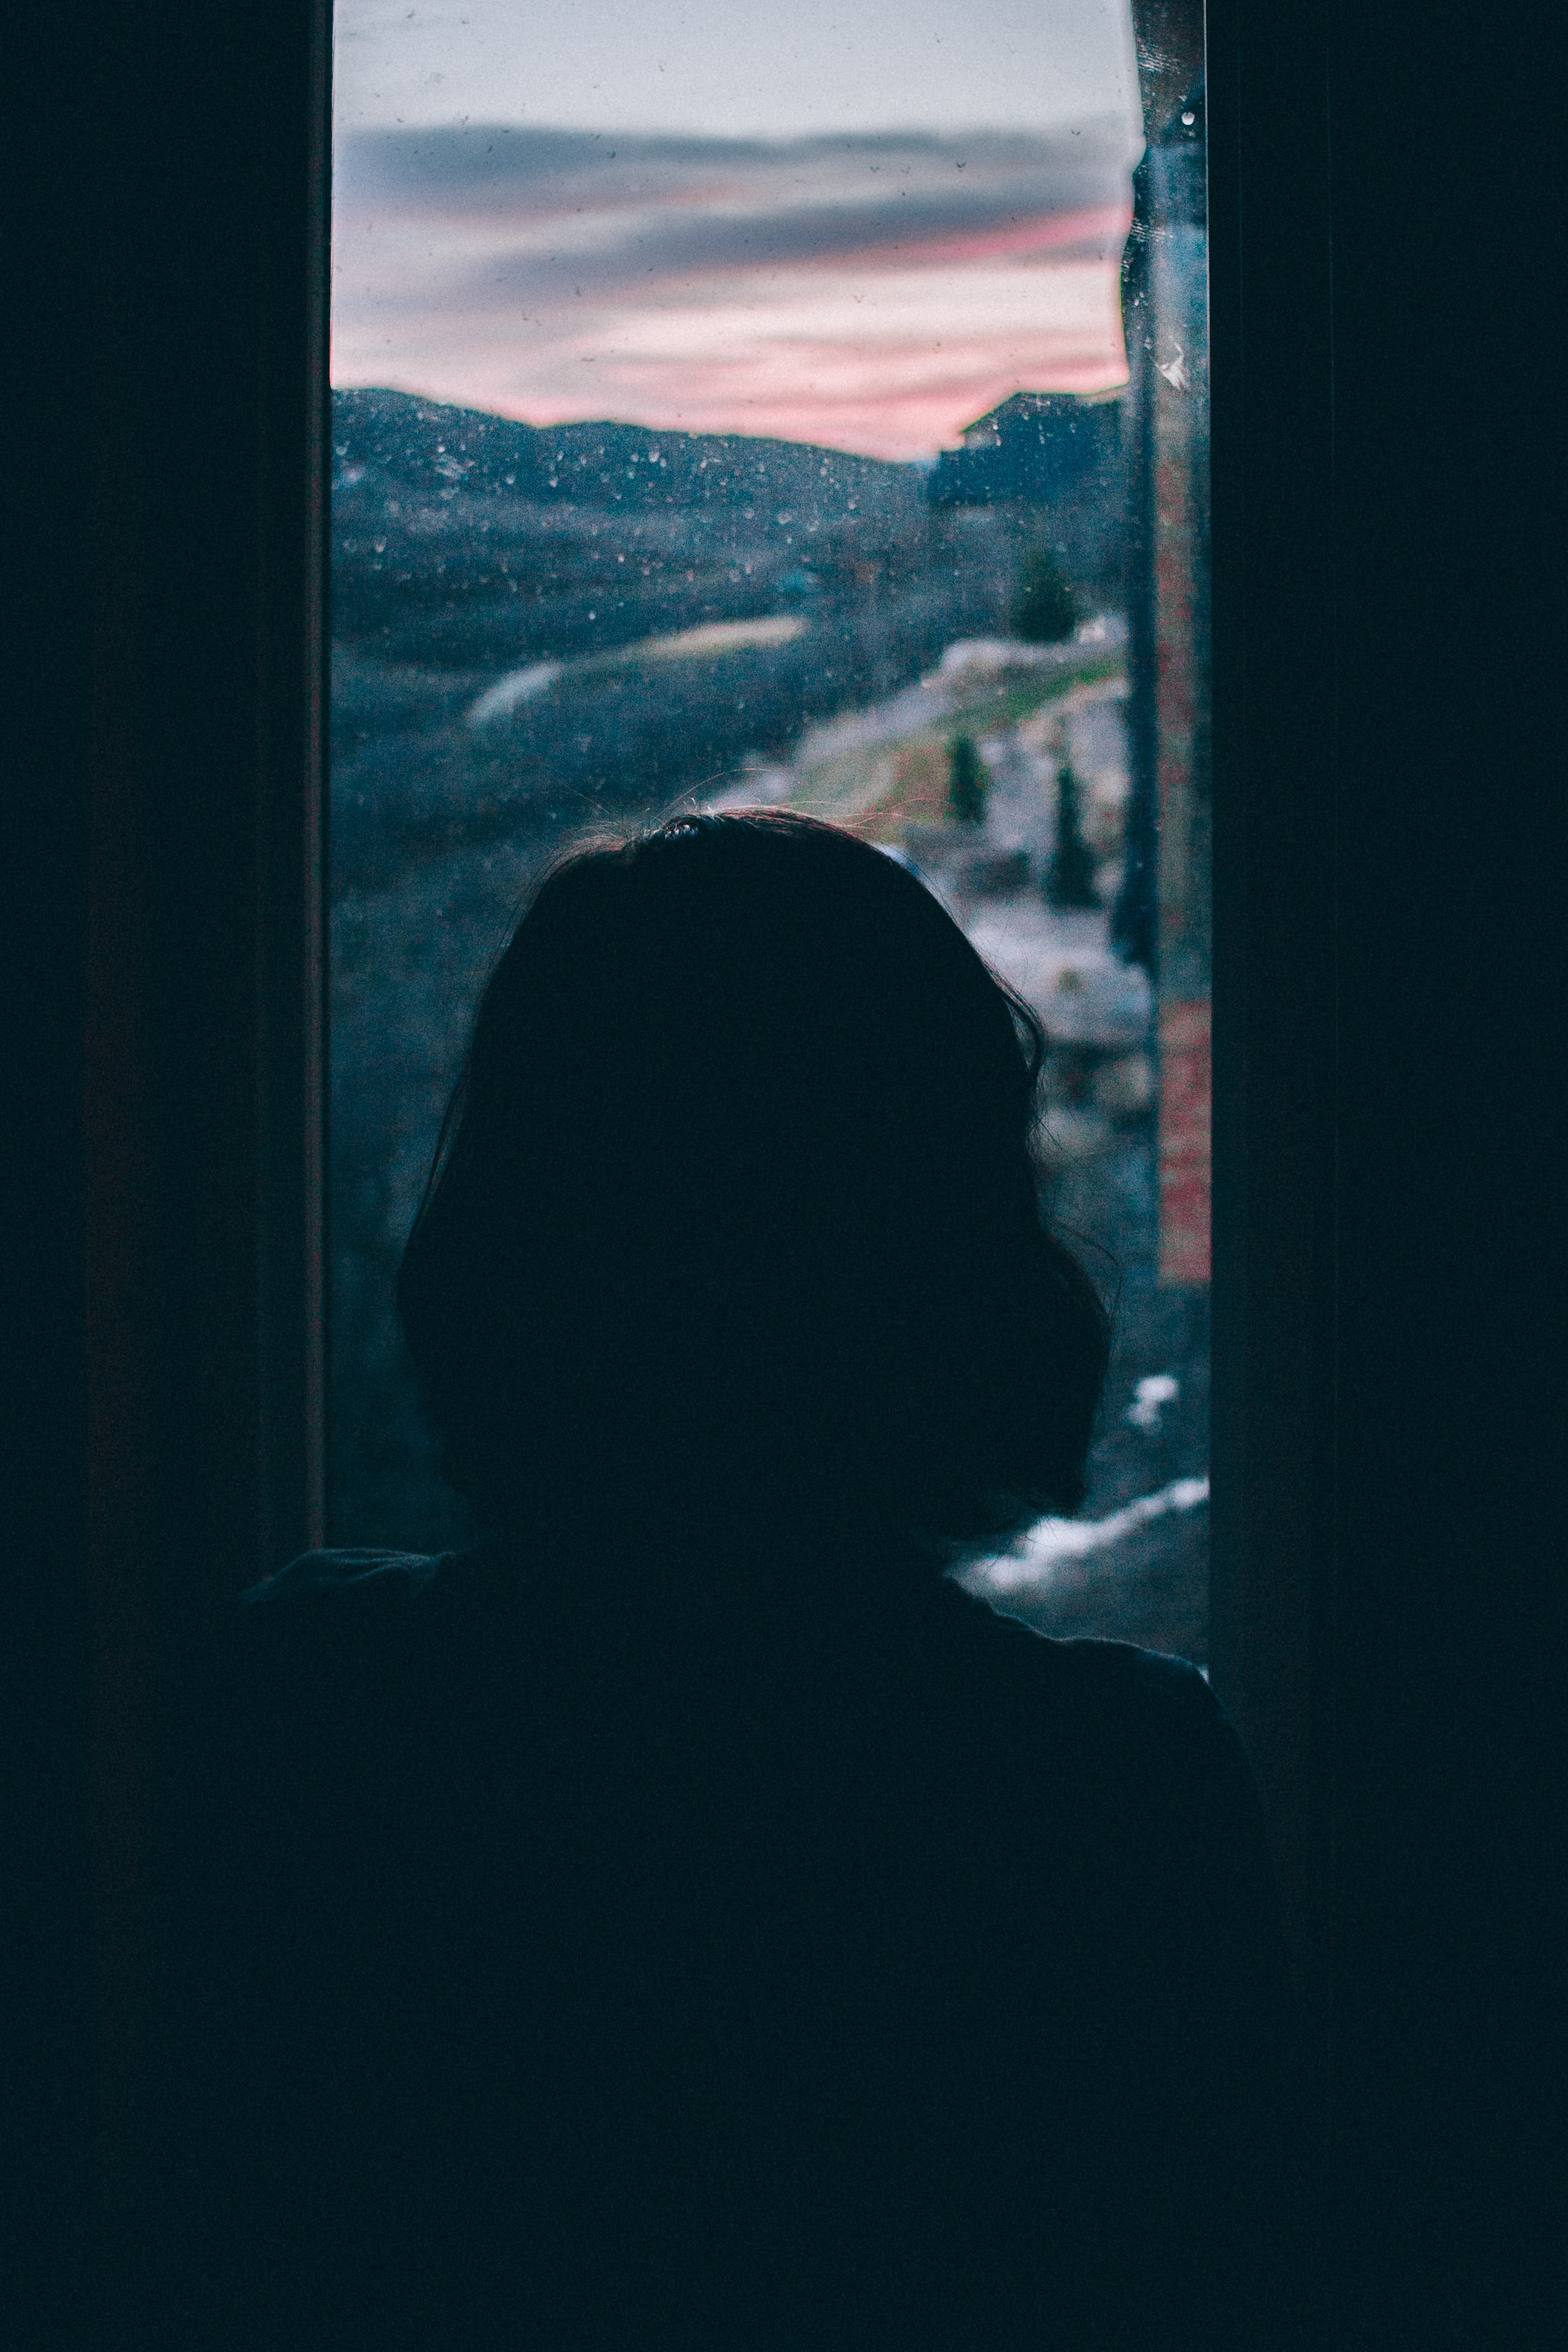 women's silhouette facing outside window